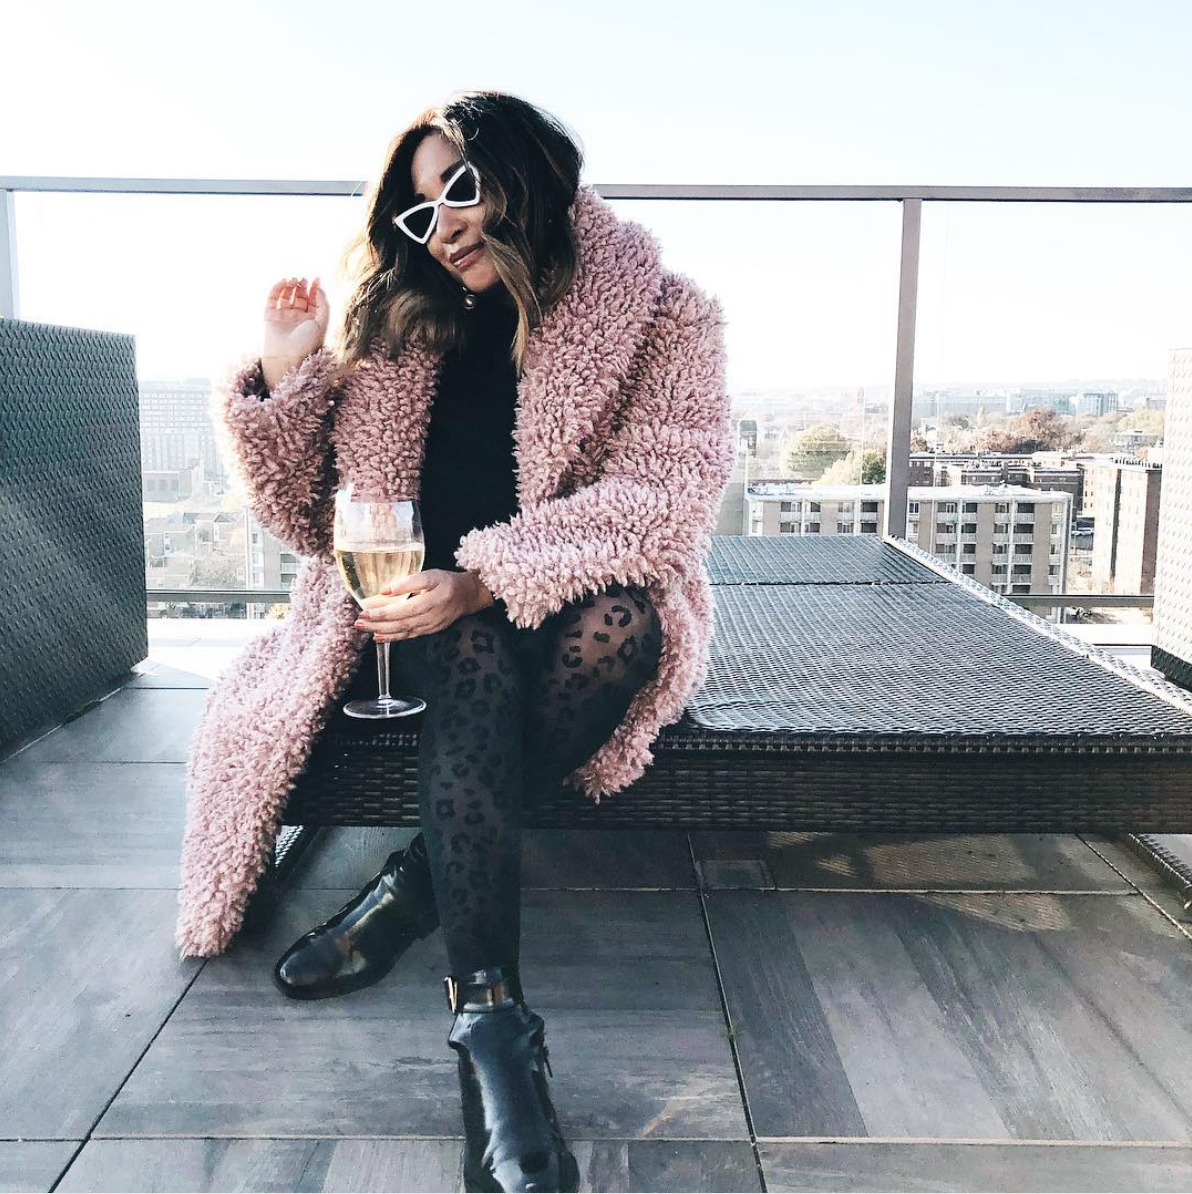 Boucle definitely doesn't blend in, but we love amping it up even more with some patterned tights and punchy accessories. (Image via @spicycandydc)